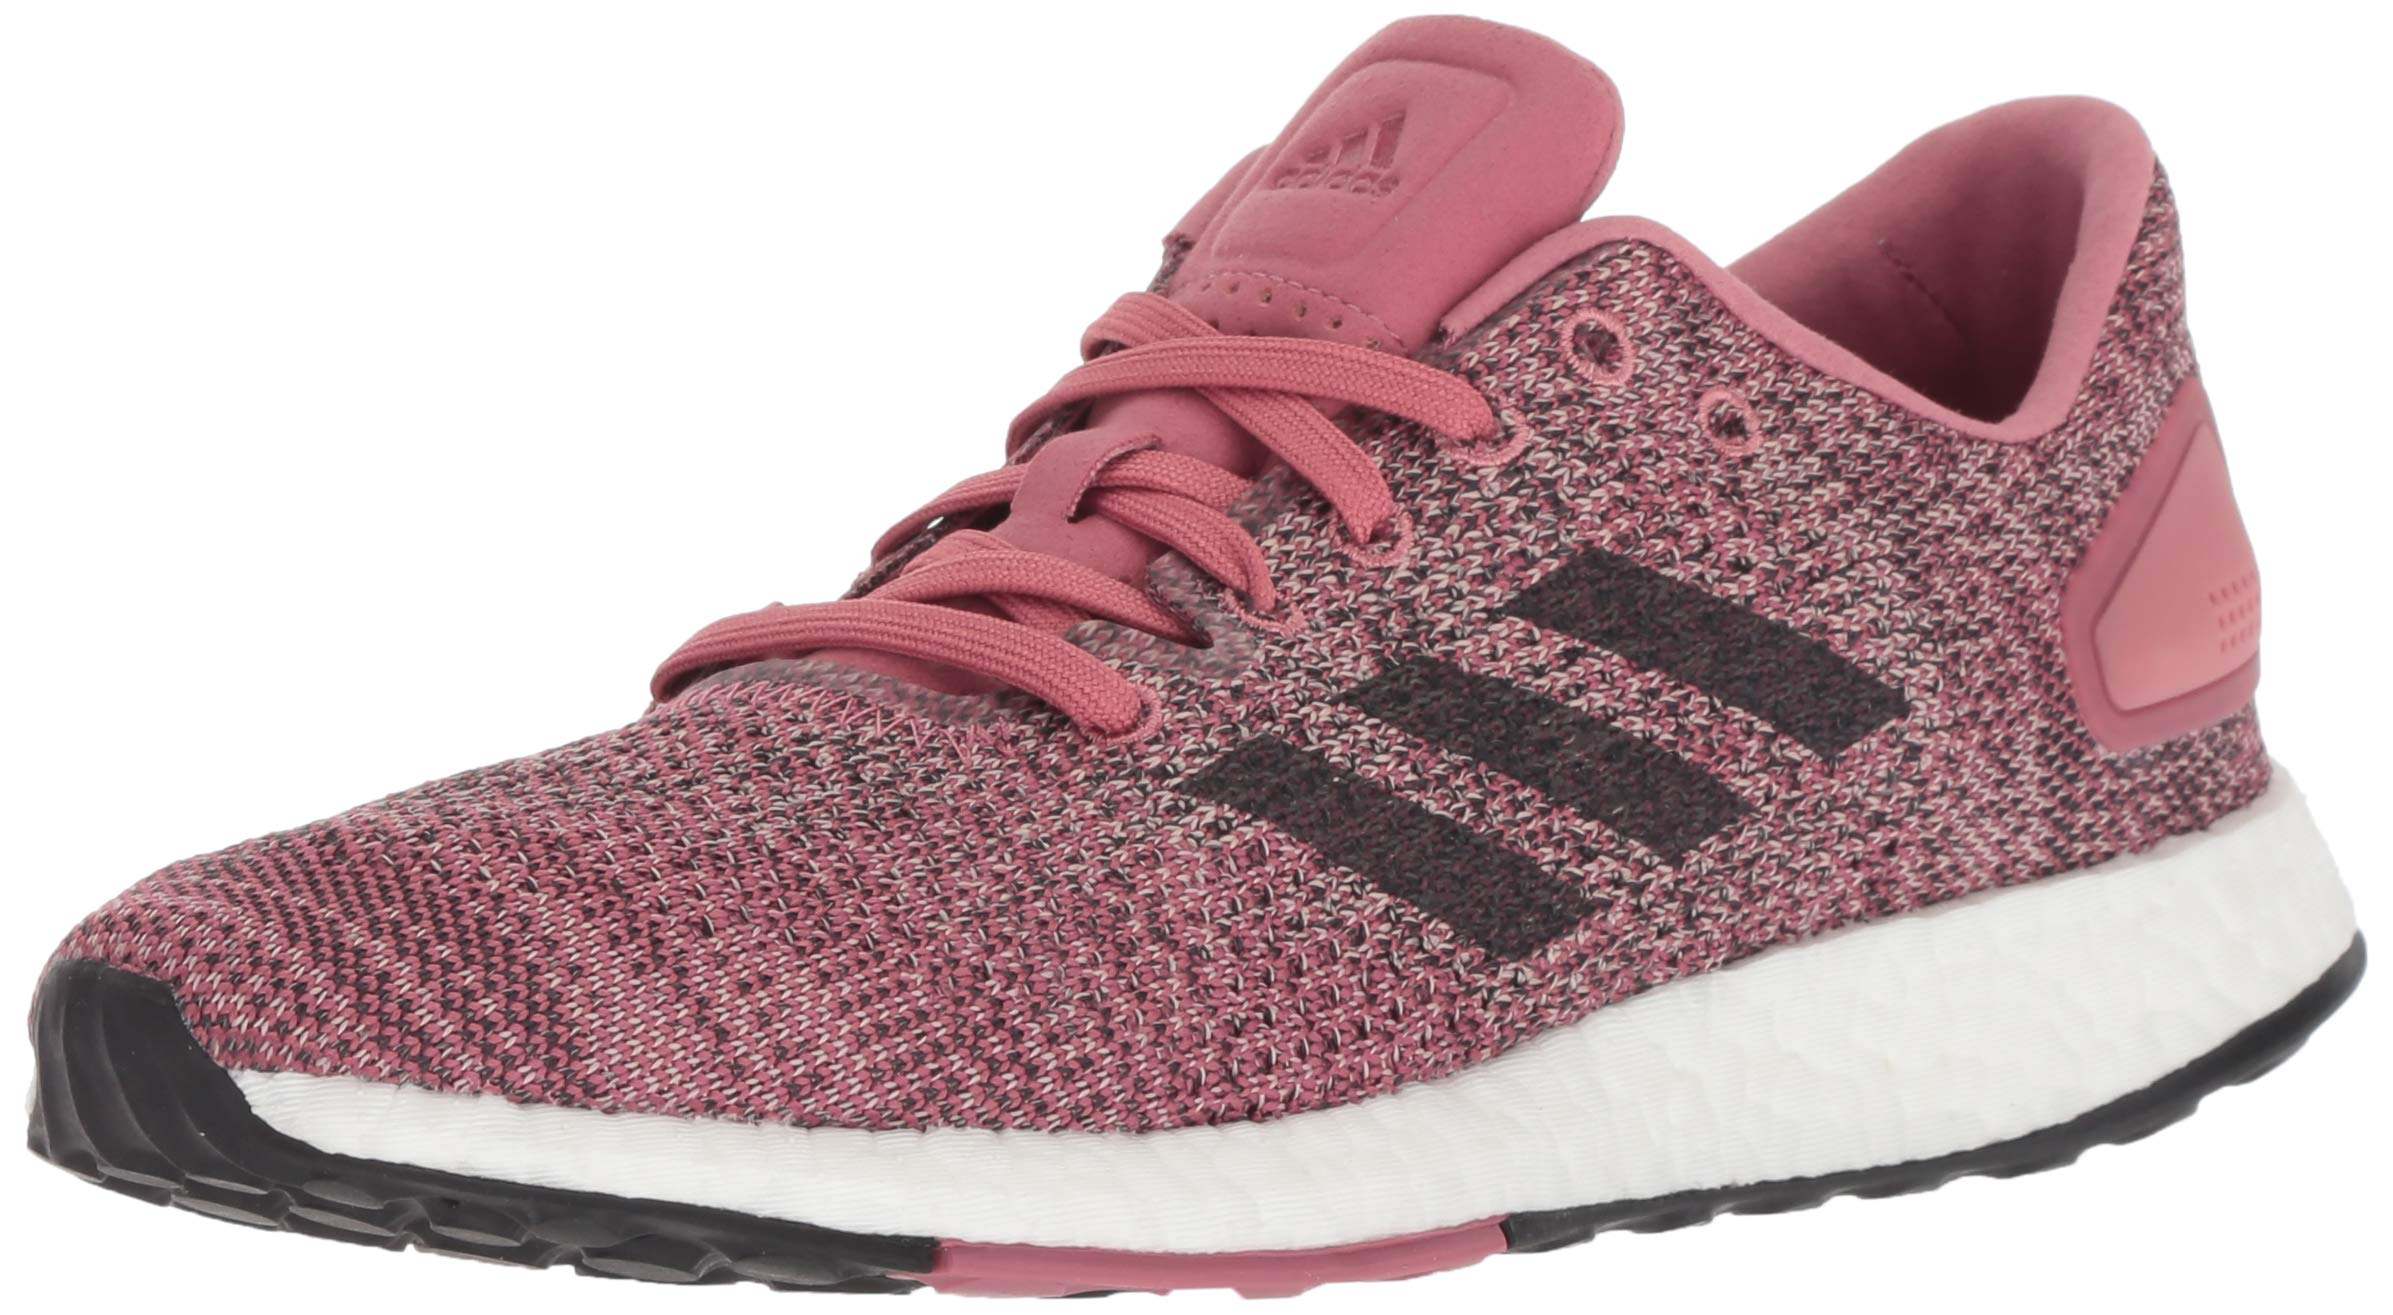 adidas Women's Pureboost DPR Running Shoes, Trace Maroon/Carbon/ash Pearl, 5.5 M US